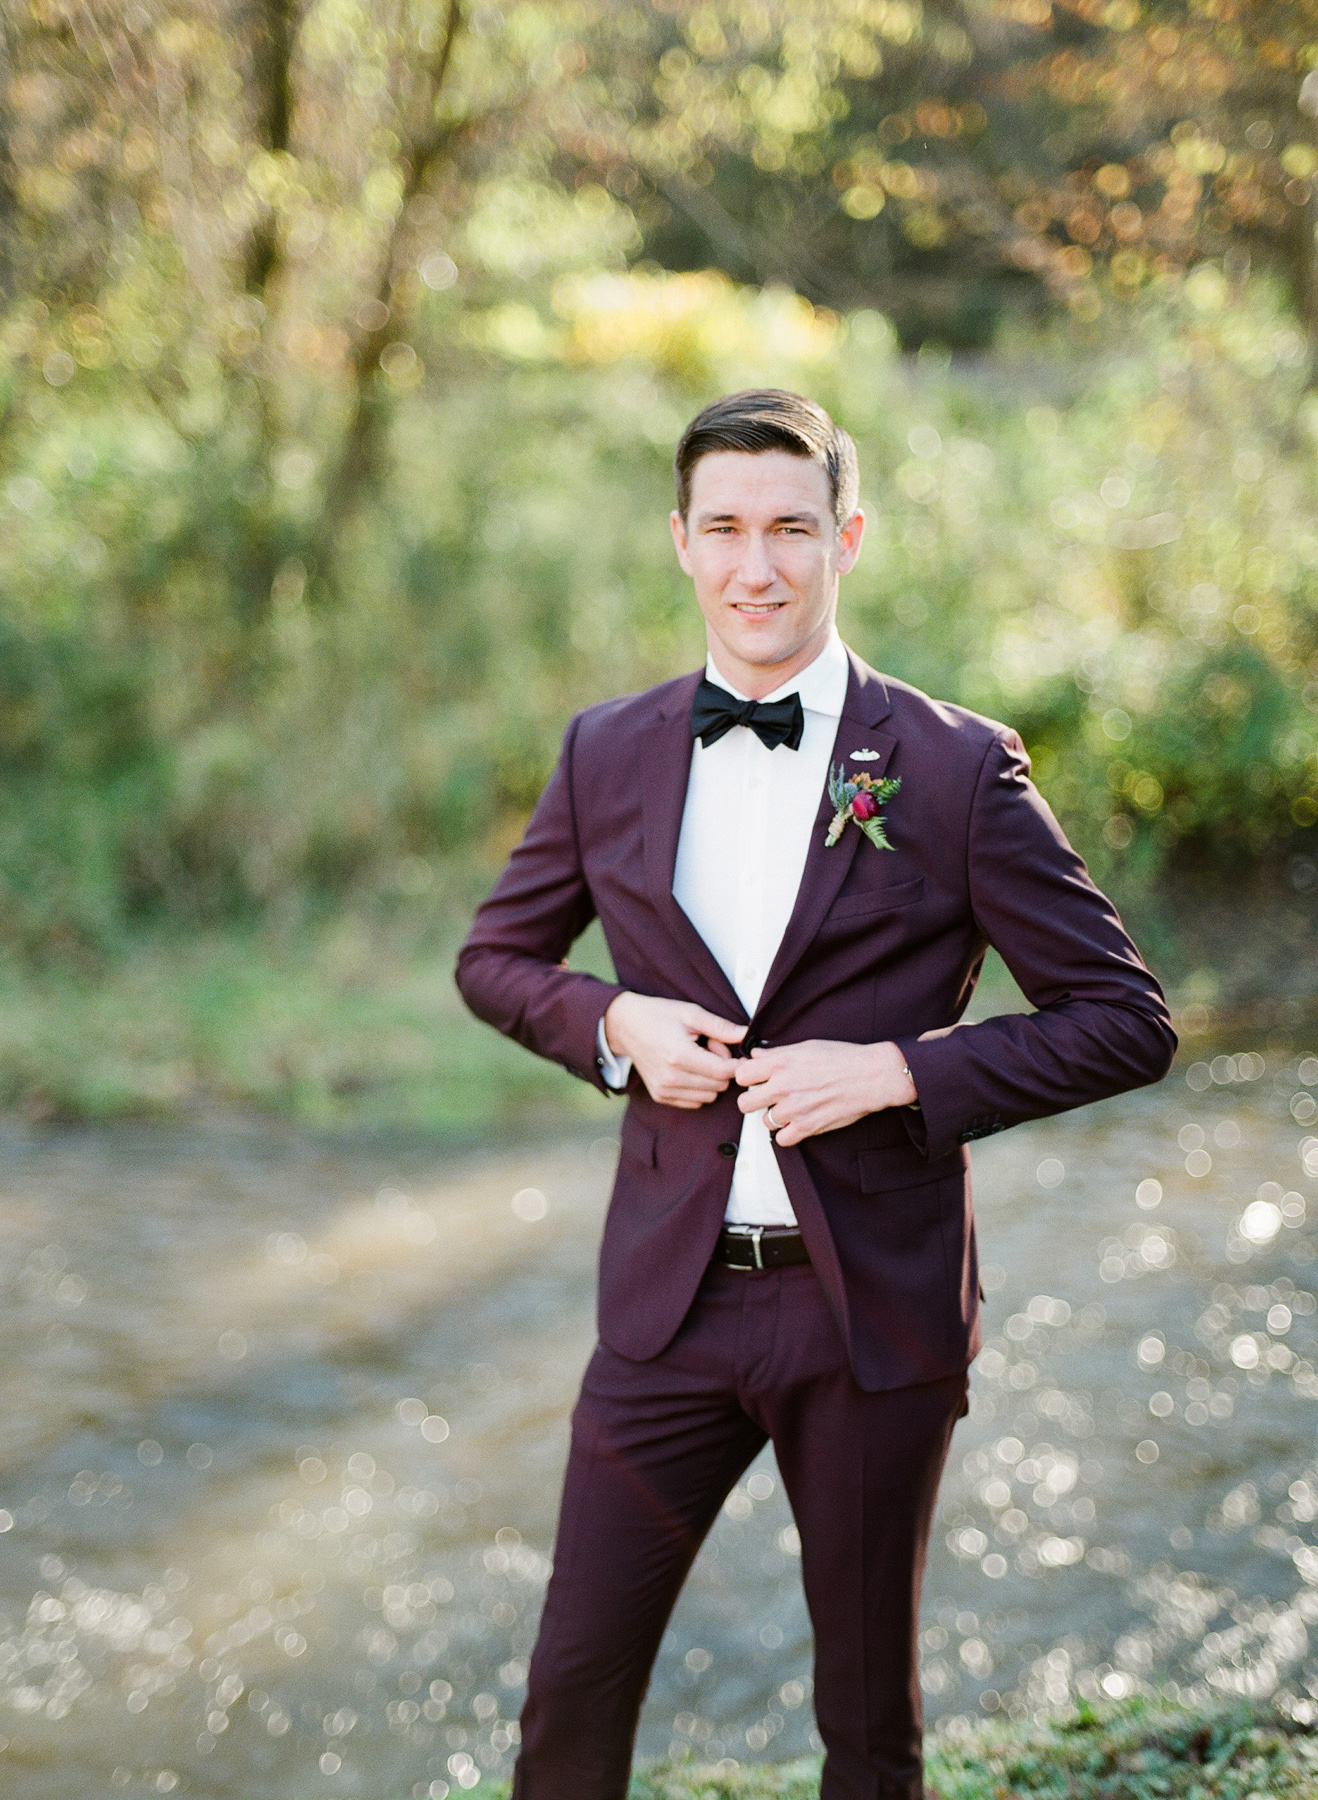 groom wearing burgundy suit, fitted white dress shirt, and black bow tie